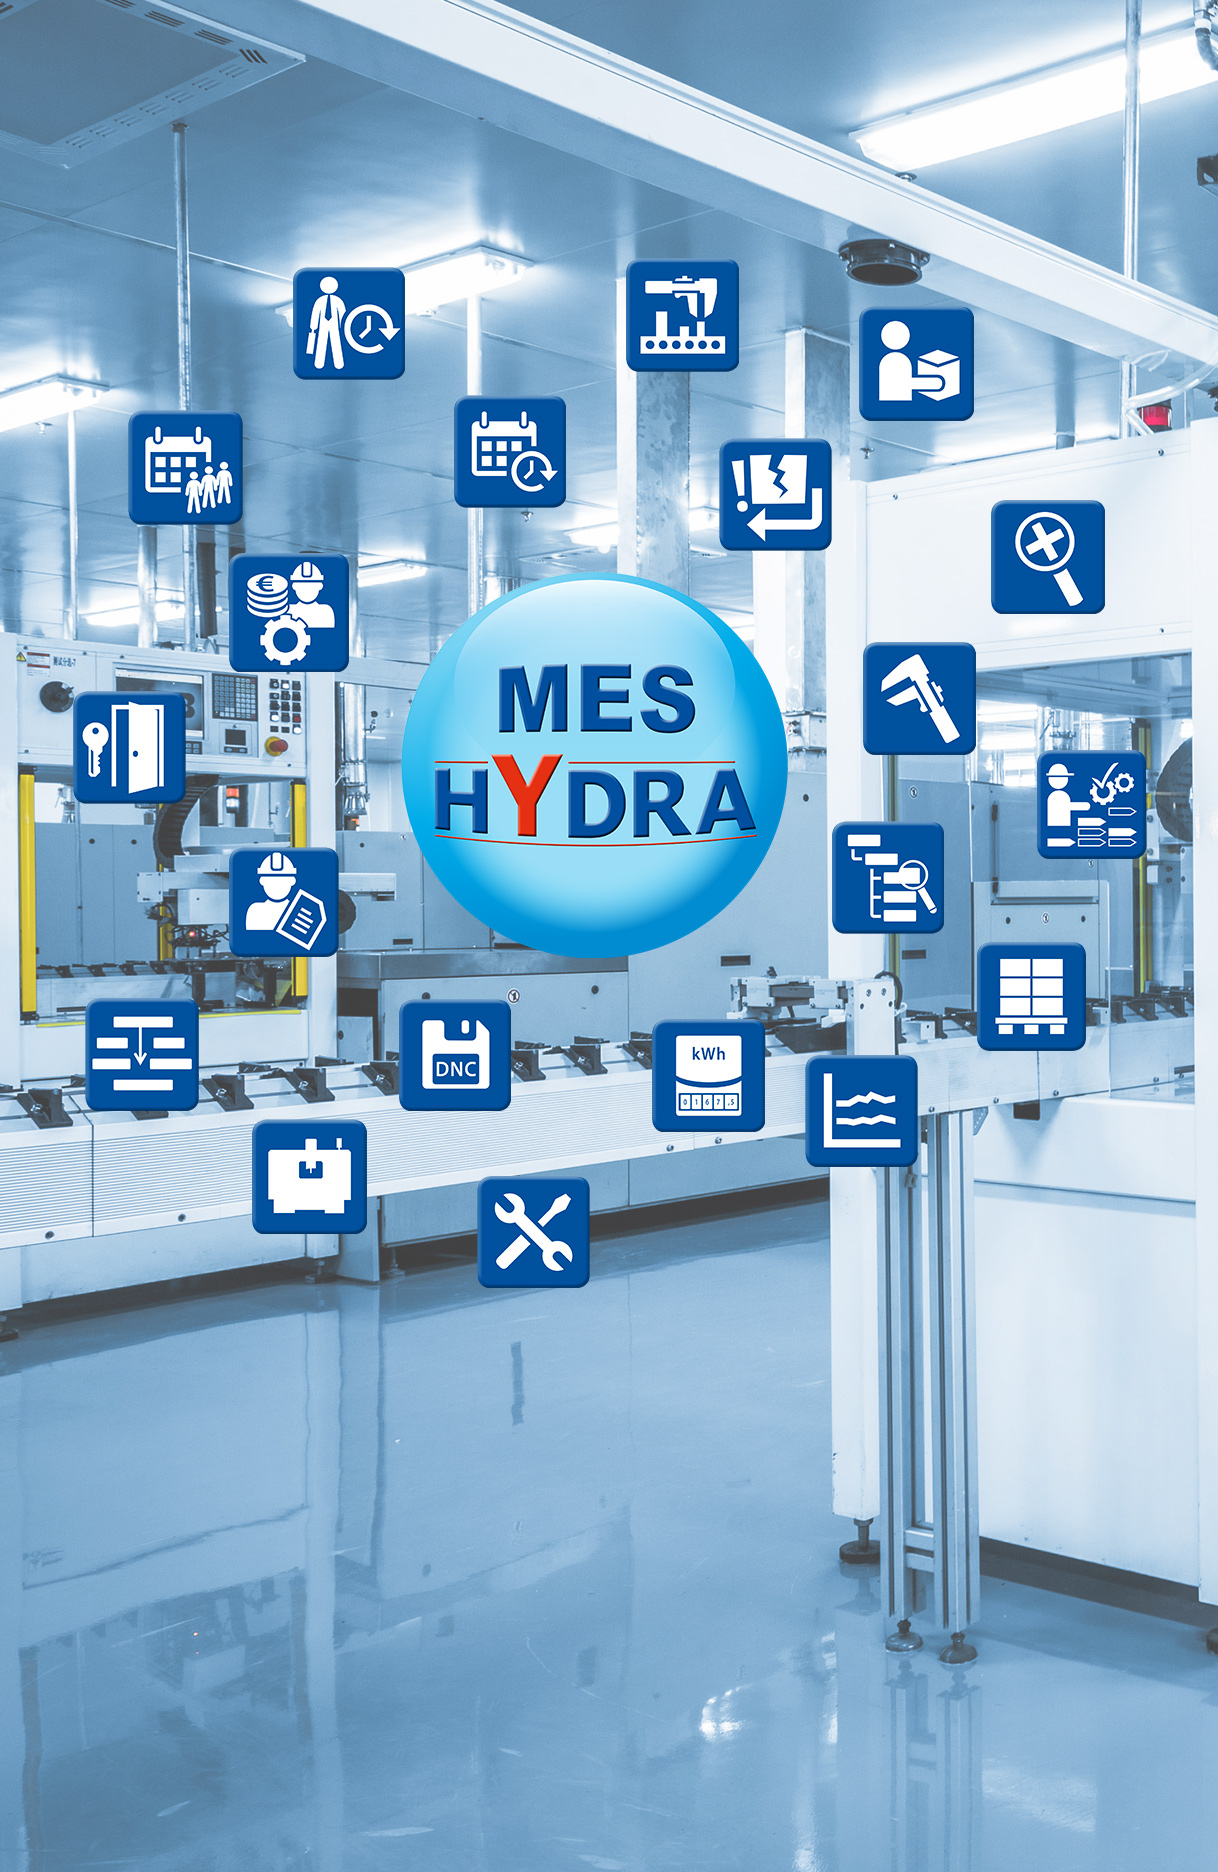 Increased production efficiency with MES